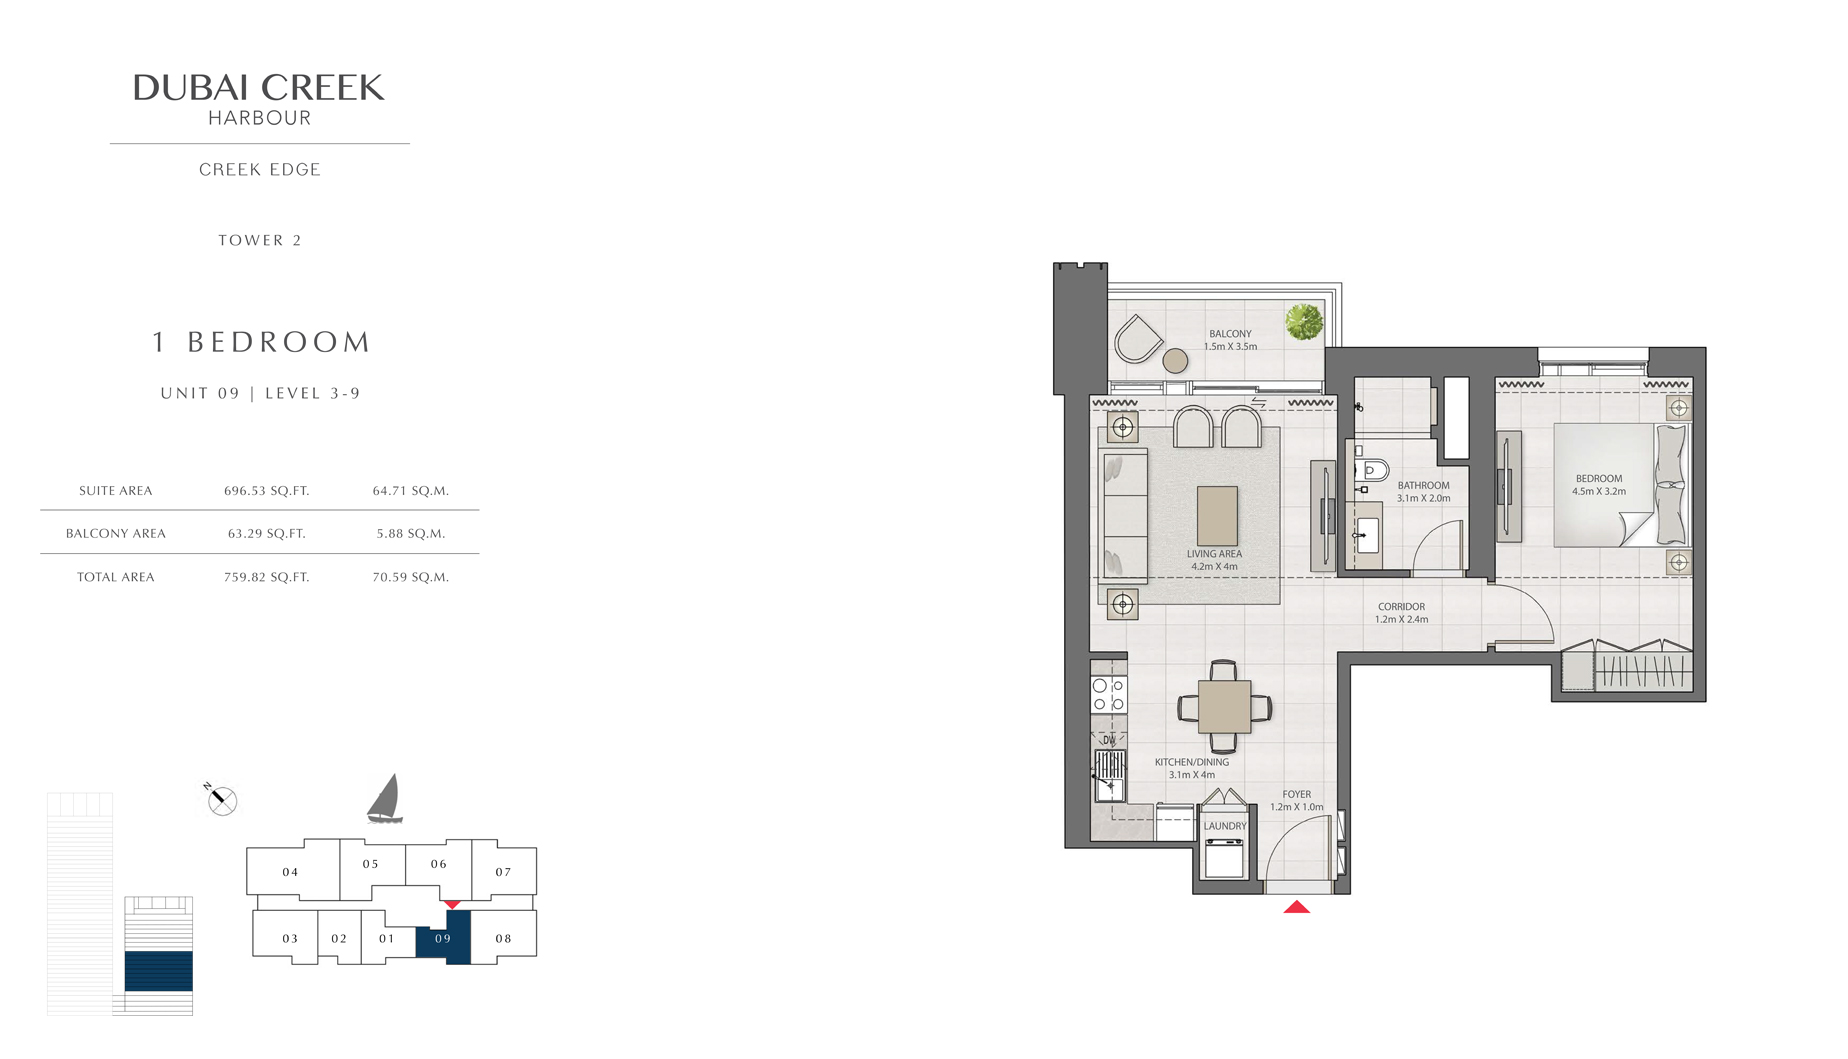 1 Bedroom Tower 2 Unit 09 Level 3-9 Size 759 sq.ft